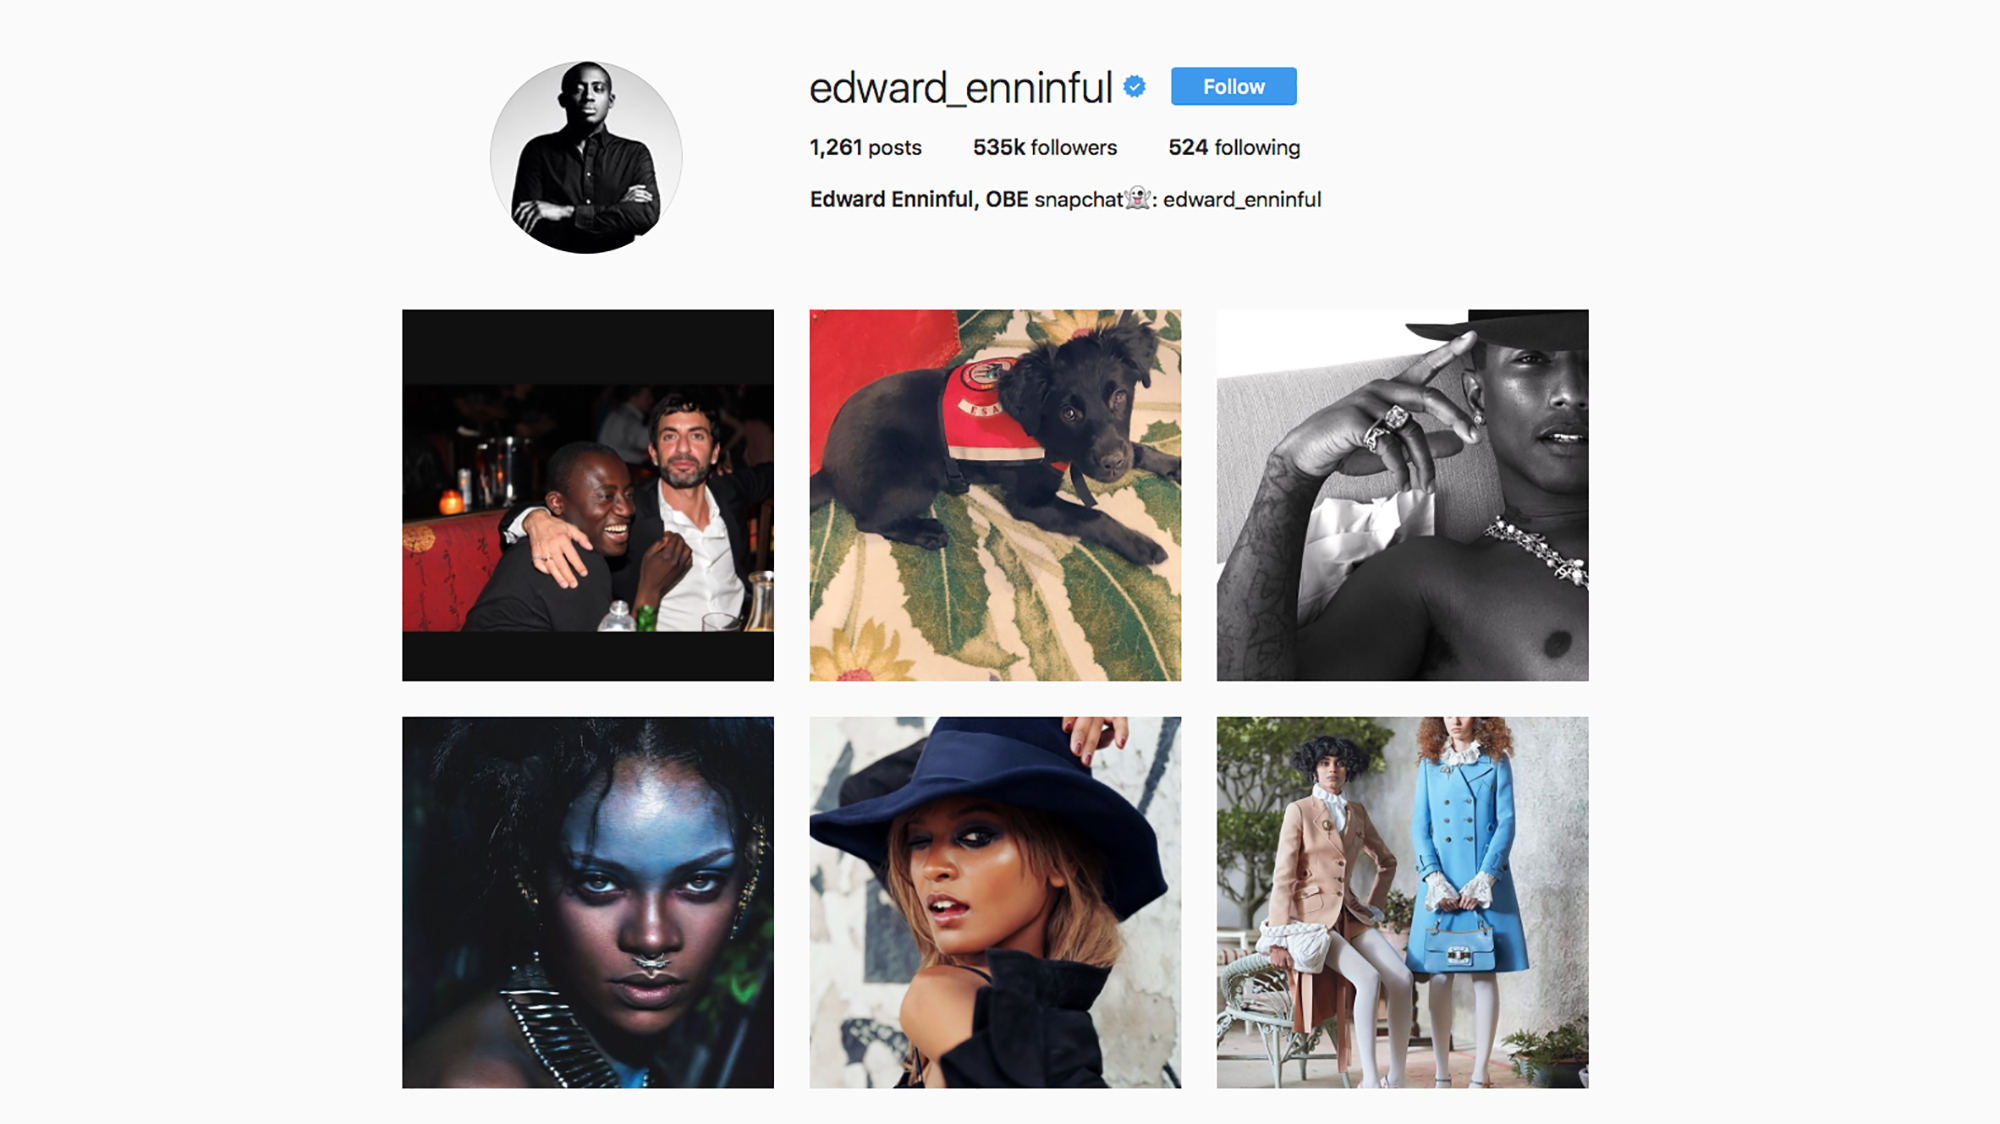 @edward_enninful